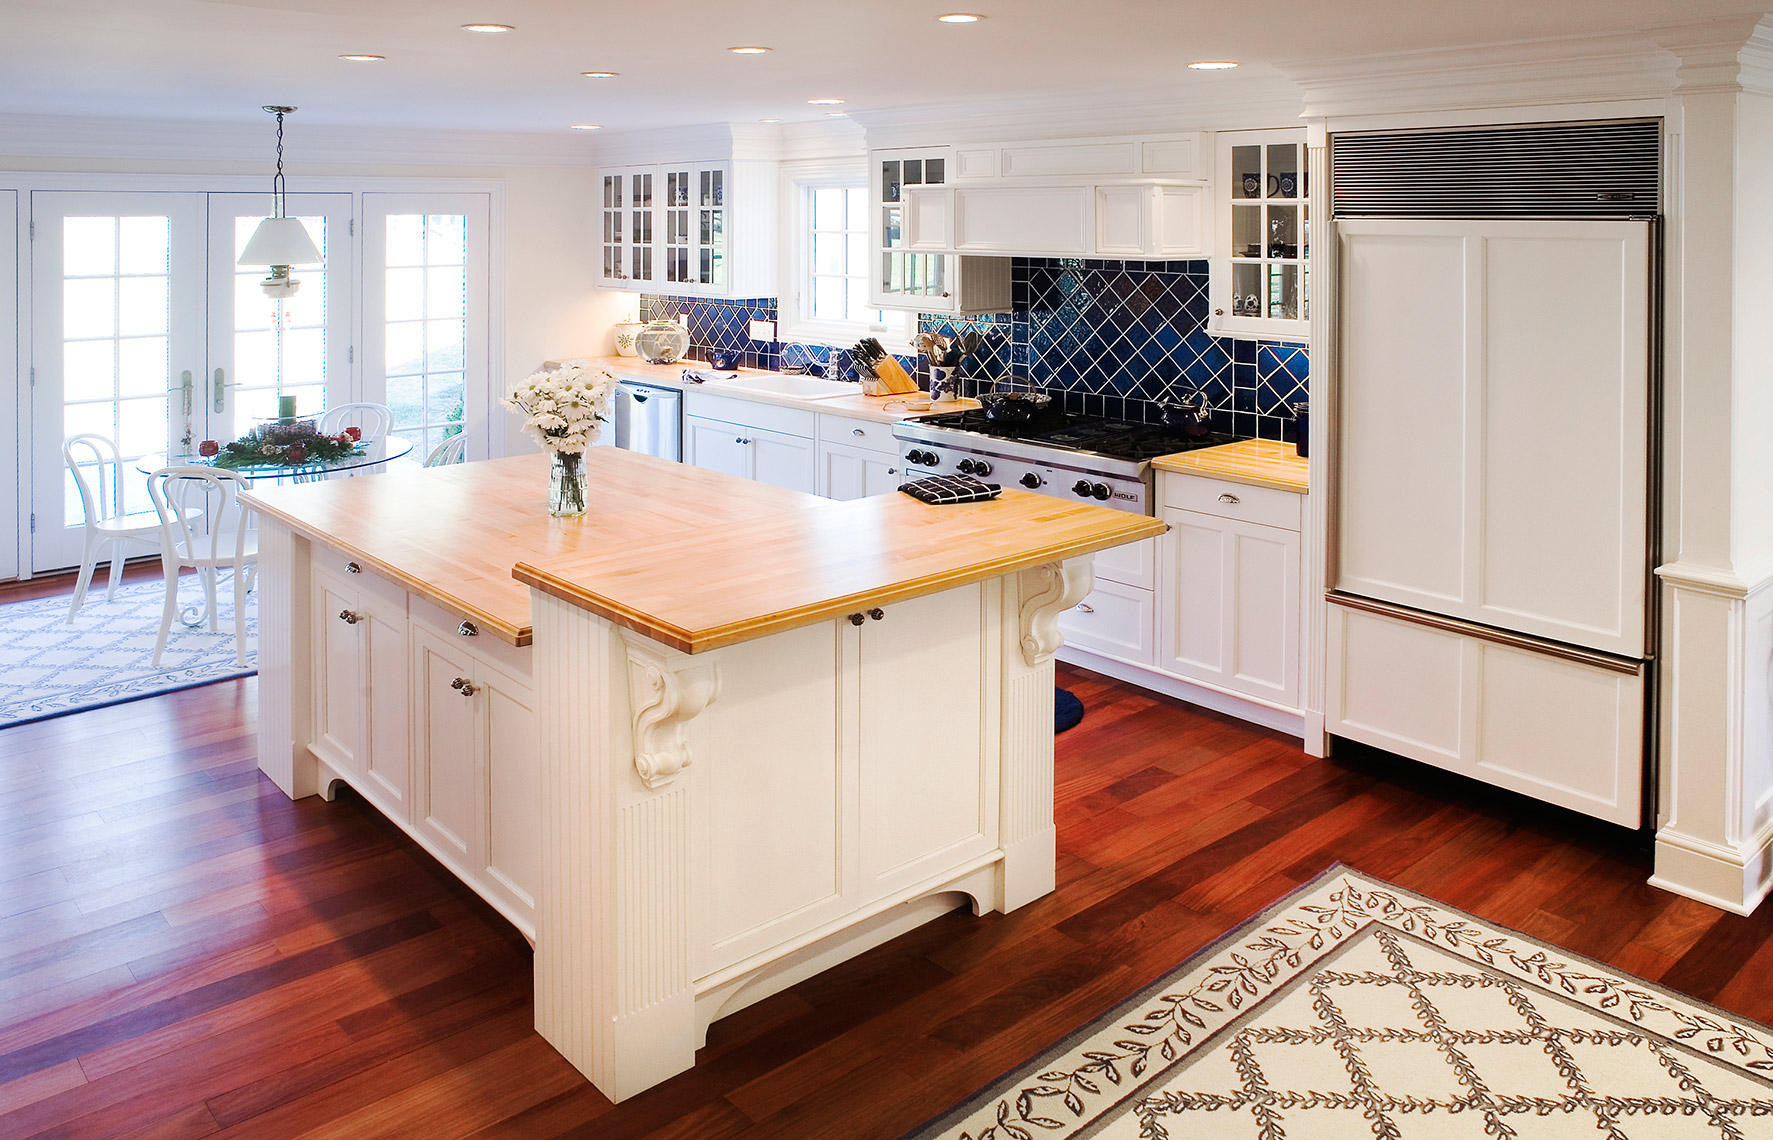 custom kitchen remodels bucks county PA - Country Kitchen Painted Finish